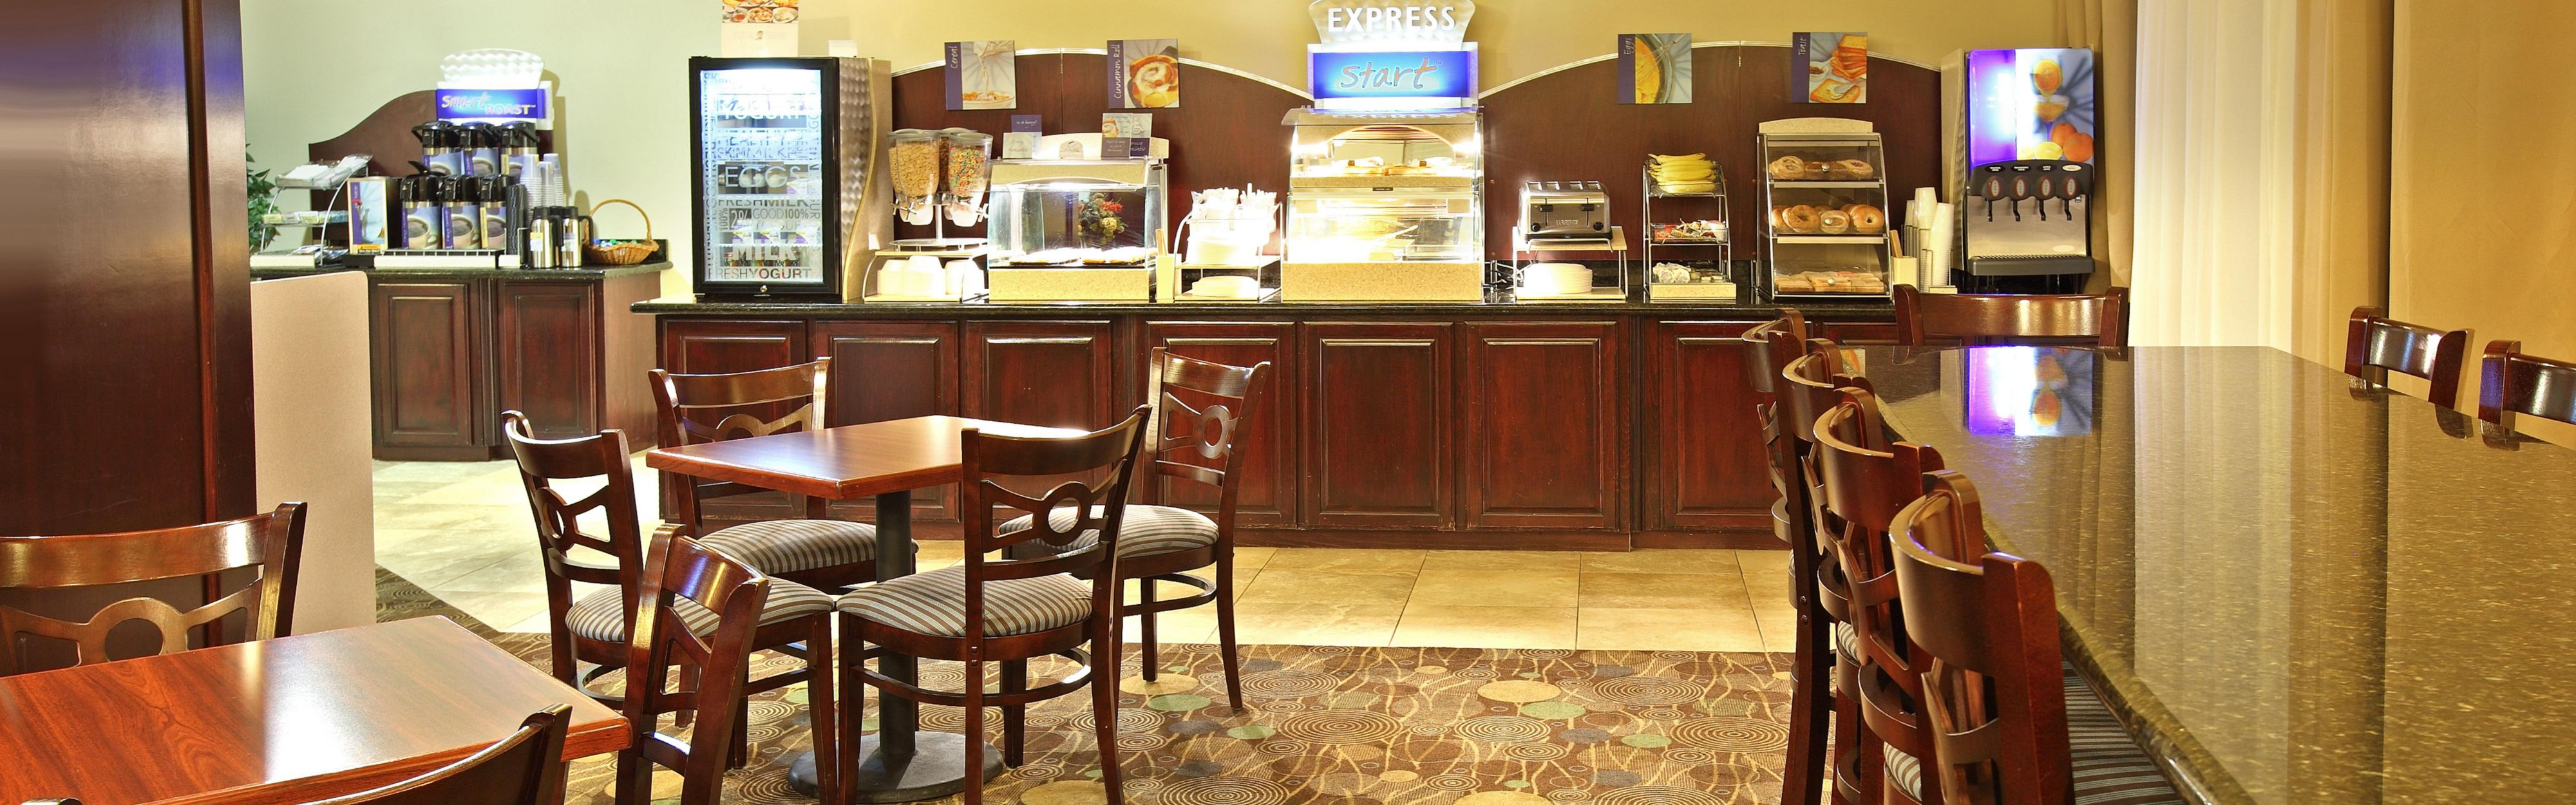 Holiday Inn Express & Suites Marshall image 3